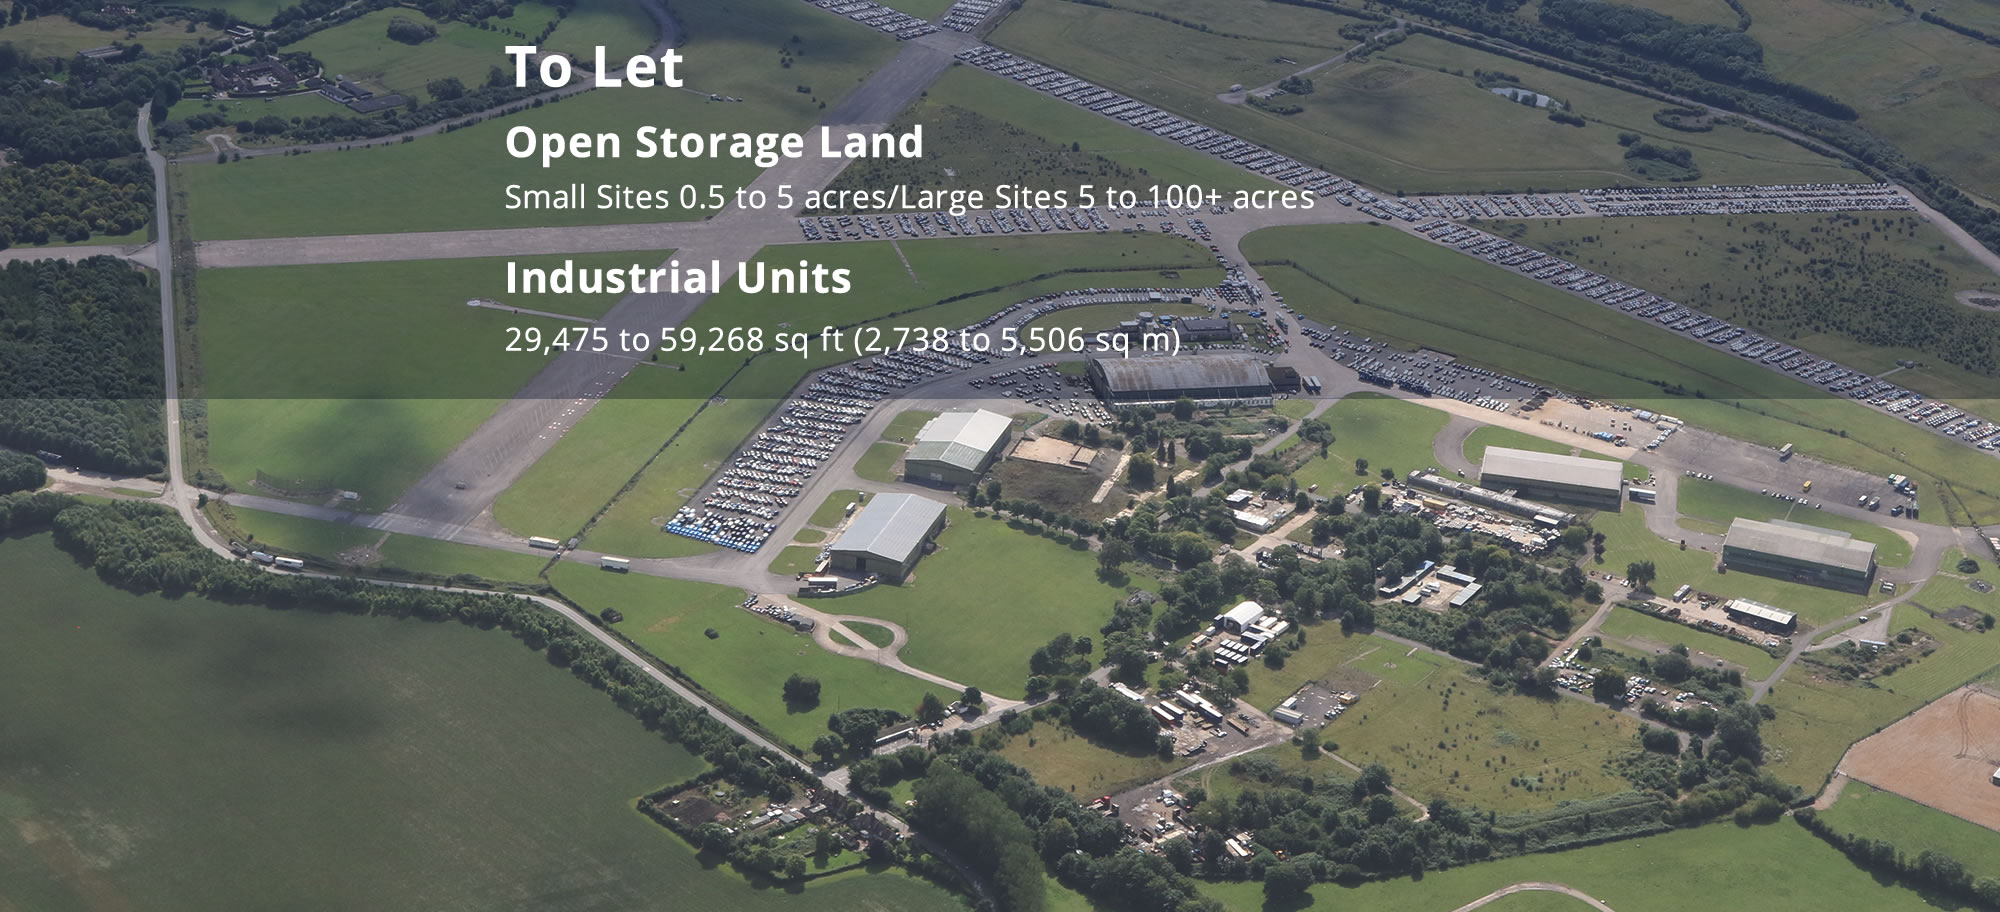 Throckmorton Industrial Park - Throckmorton Airfield, Pershore WR10 2JH